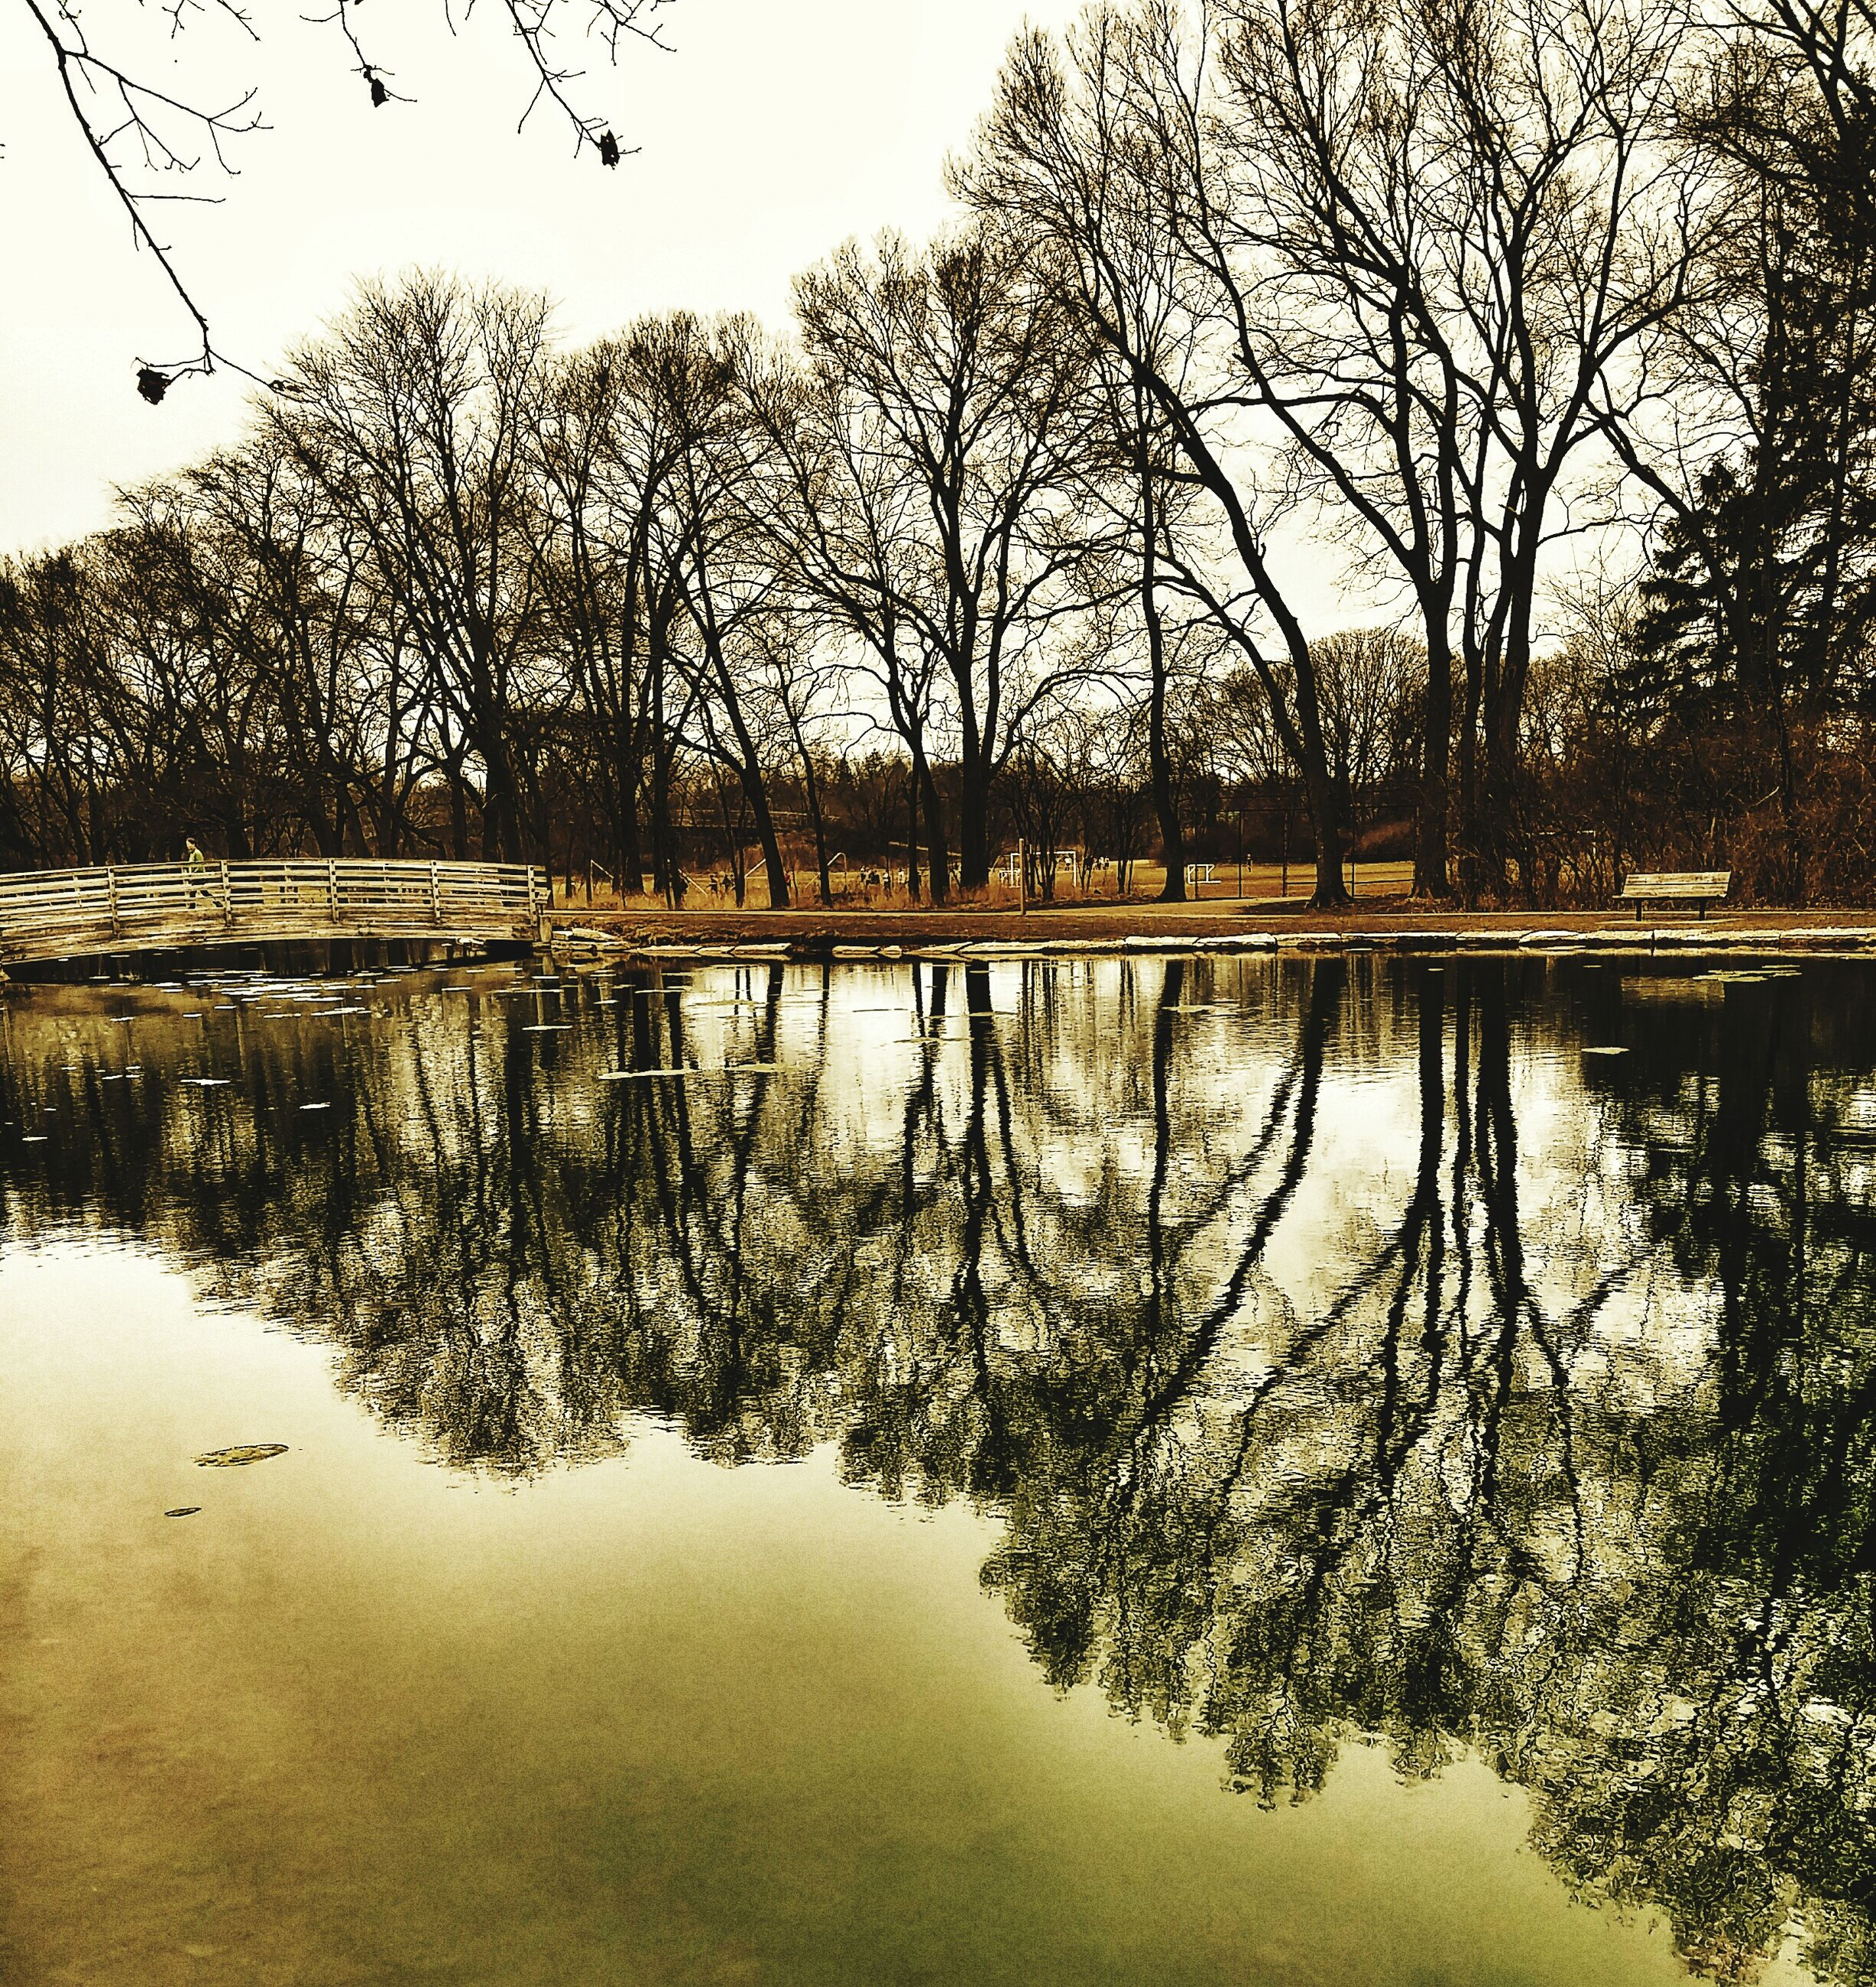 water, tree, reflection, lake, tranquility, tranquil scene, bare tree, branch, scenics, nature, beauty in nature, waterfront, lakeshore, standing water, clear sky, sky, river, idyllic, calm, non-urban scene